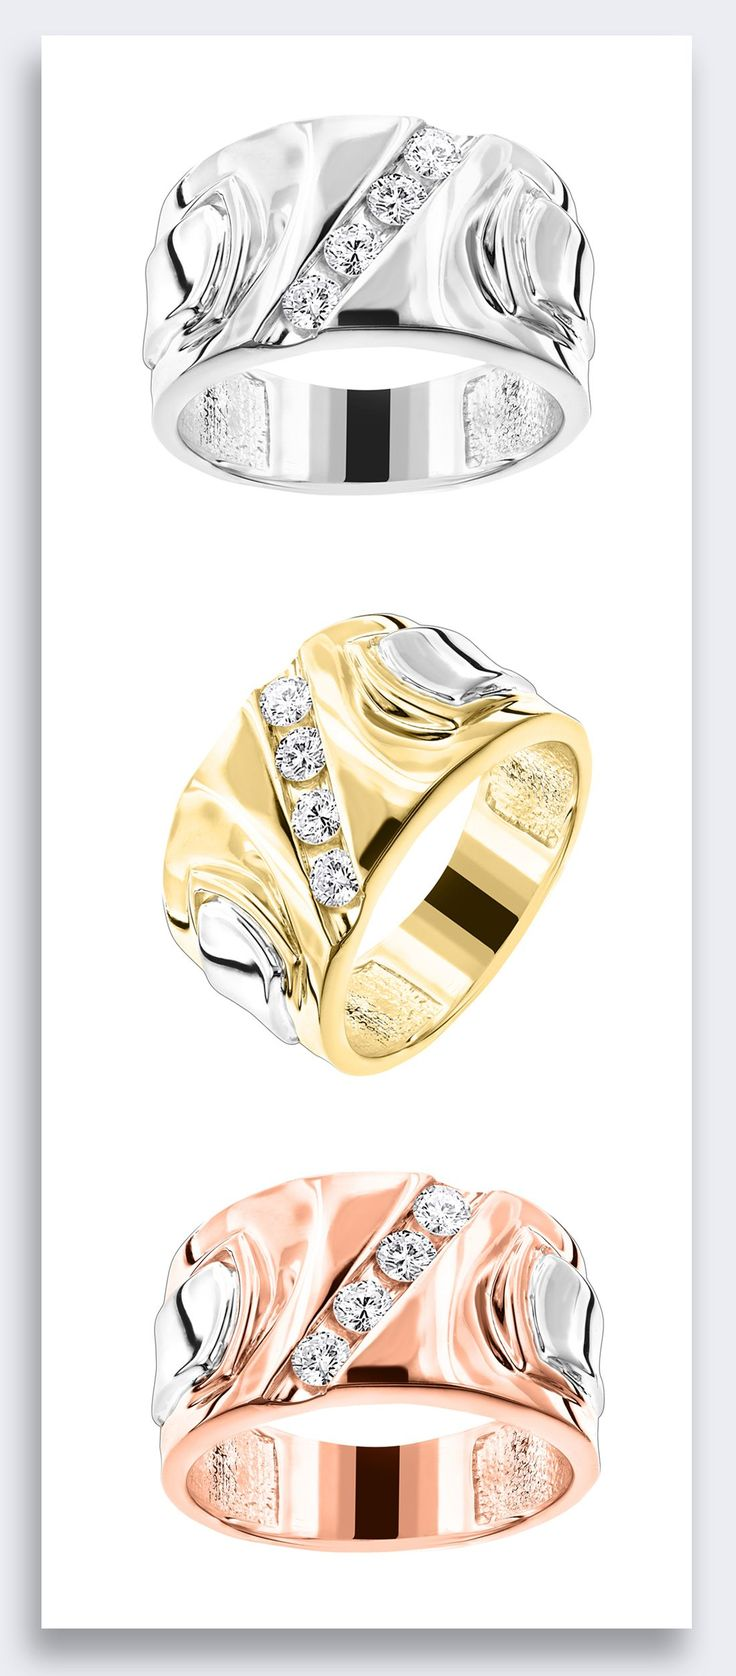 This one of a kind Luccello Brand 18K Gold Mens Designer Diamond Ring showcases 4 dazzling high quality G/VS round diamonds totalling 1/2 carat, each diagonally channel-set in a lustrous gold frame.